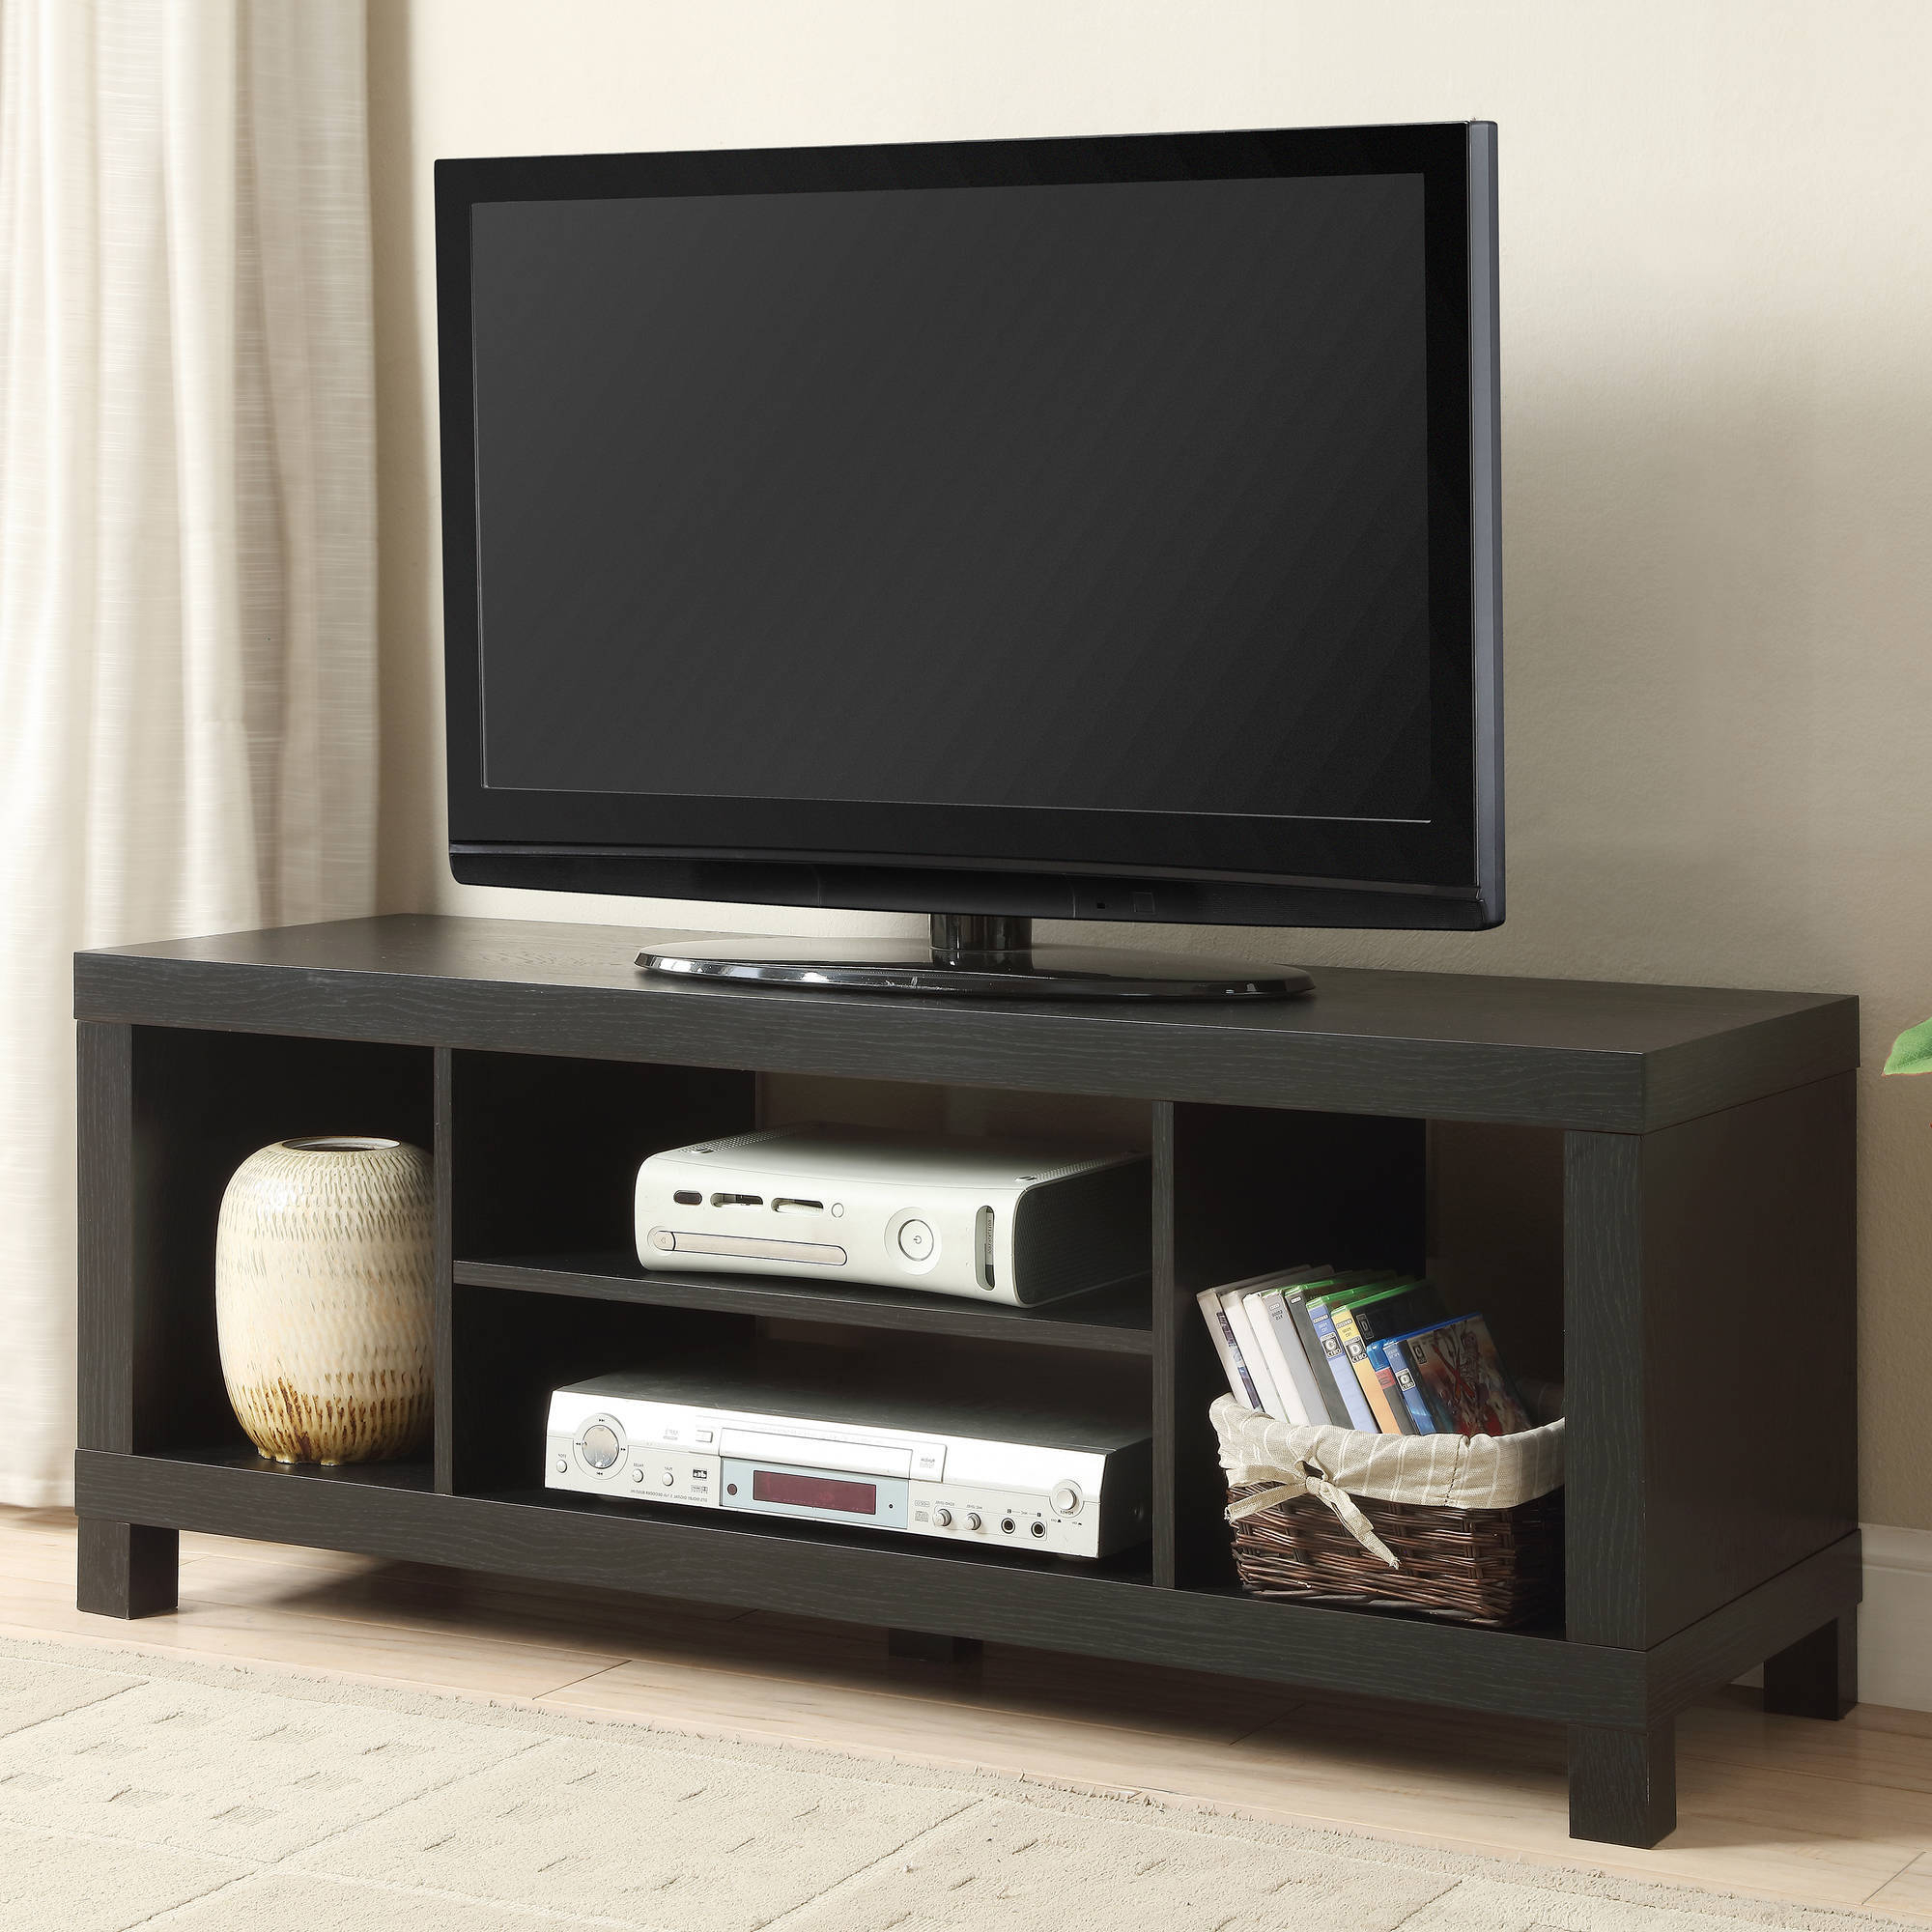 Fashionable 42 Inch Tv Stand Entertainment Center Home Theater Media Storage Within Storage Tv Stands (Gallery 18 of 20)